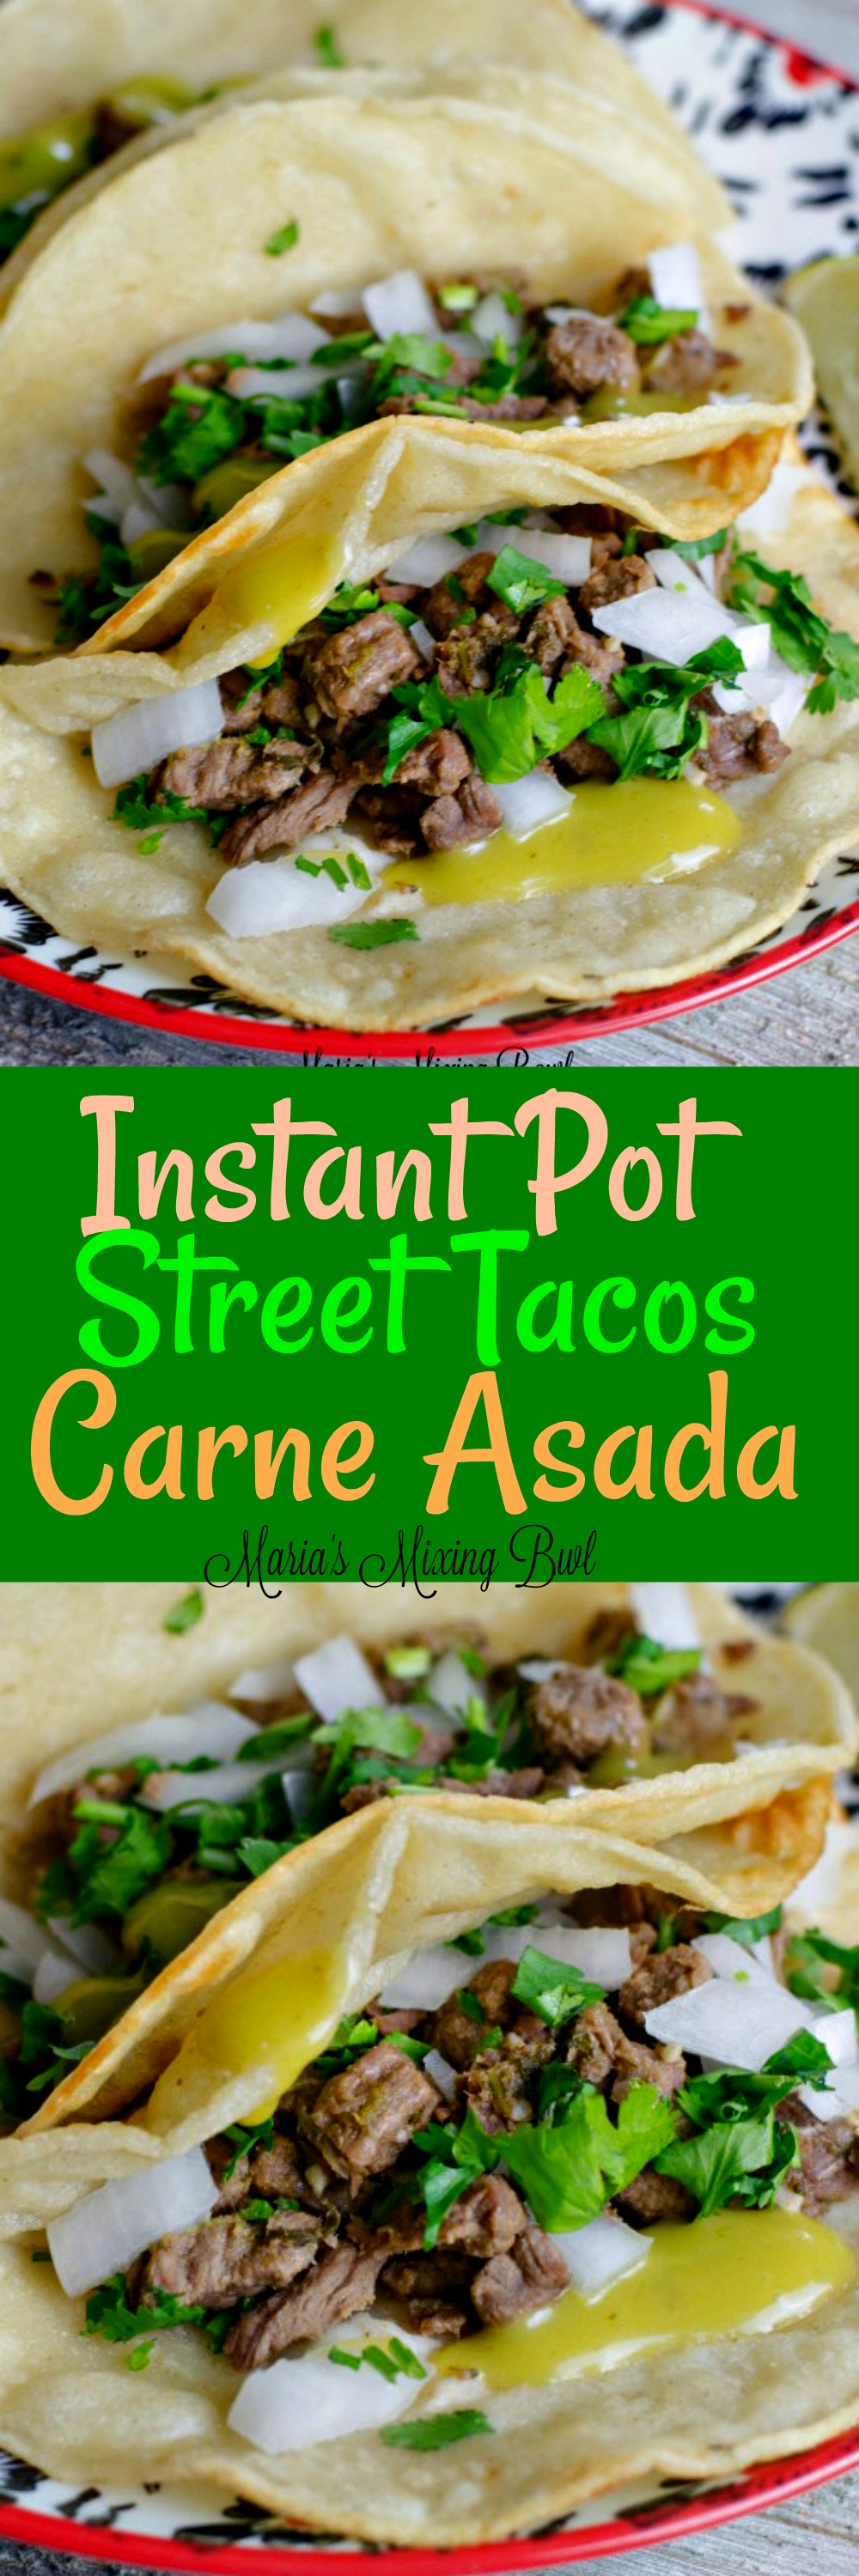 Instant Pot Steak Tacos (Carne Asada) Recipe - A quick and easy recipe for your weeknight meals.It has a great flavor that's perfect for street tacos!